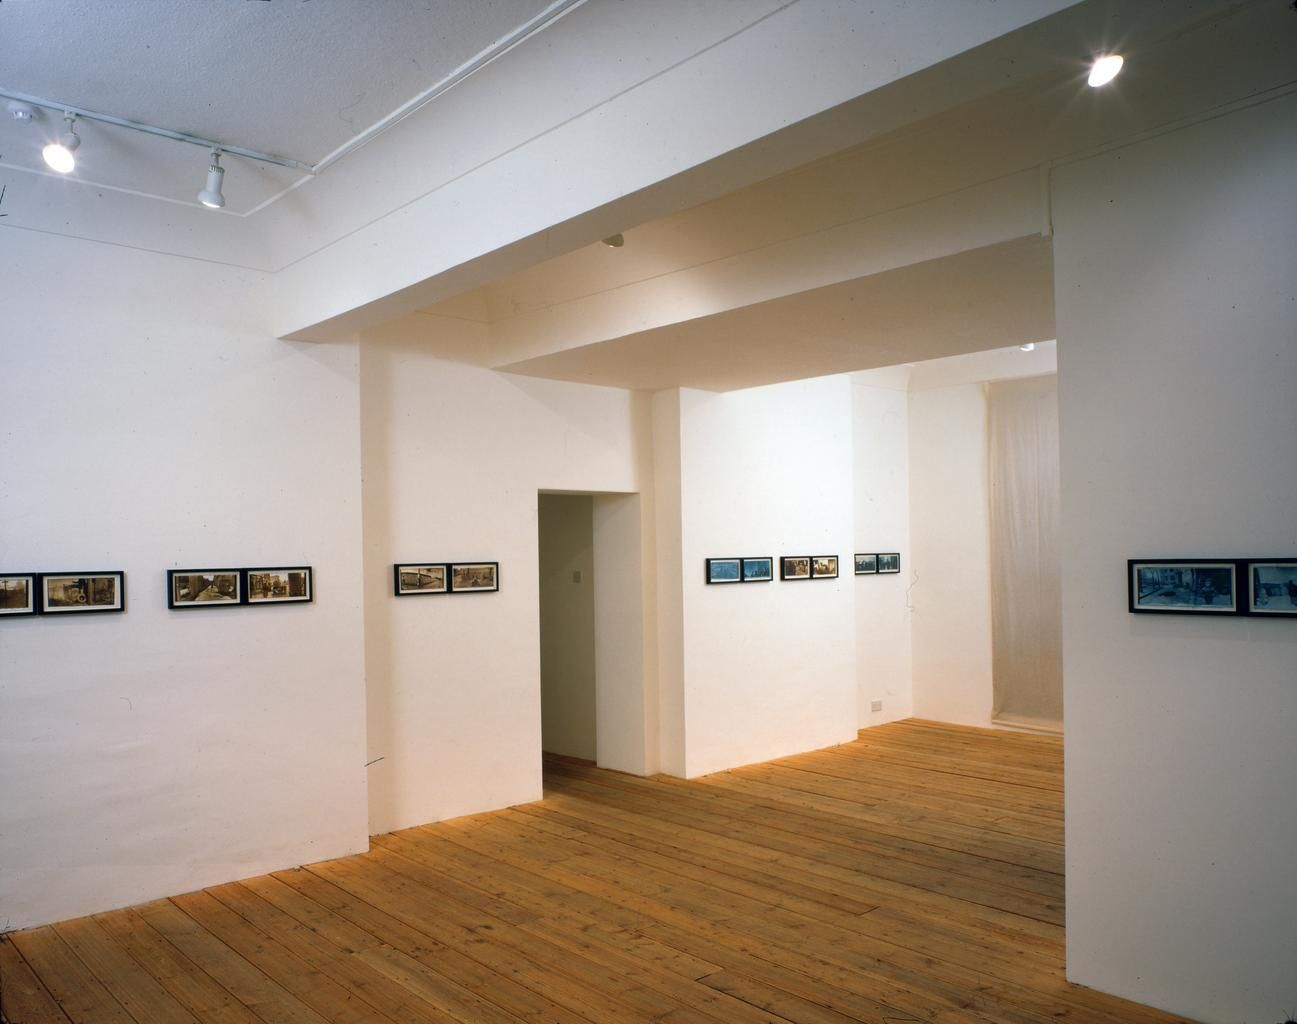 Installation view, Boris Mikhailov: 'By the Ground' and 'At Dusk'.  London Projects, London, March 7 - April 12, 1997